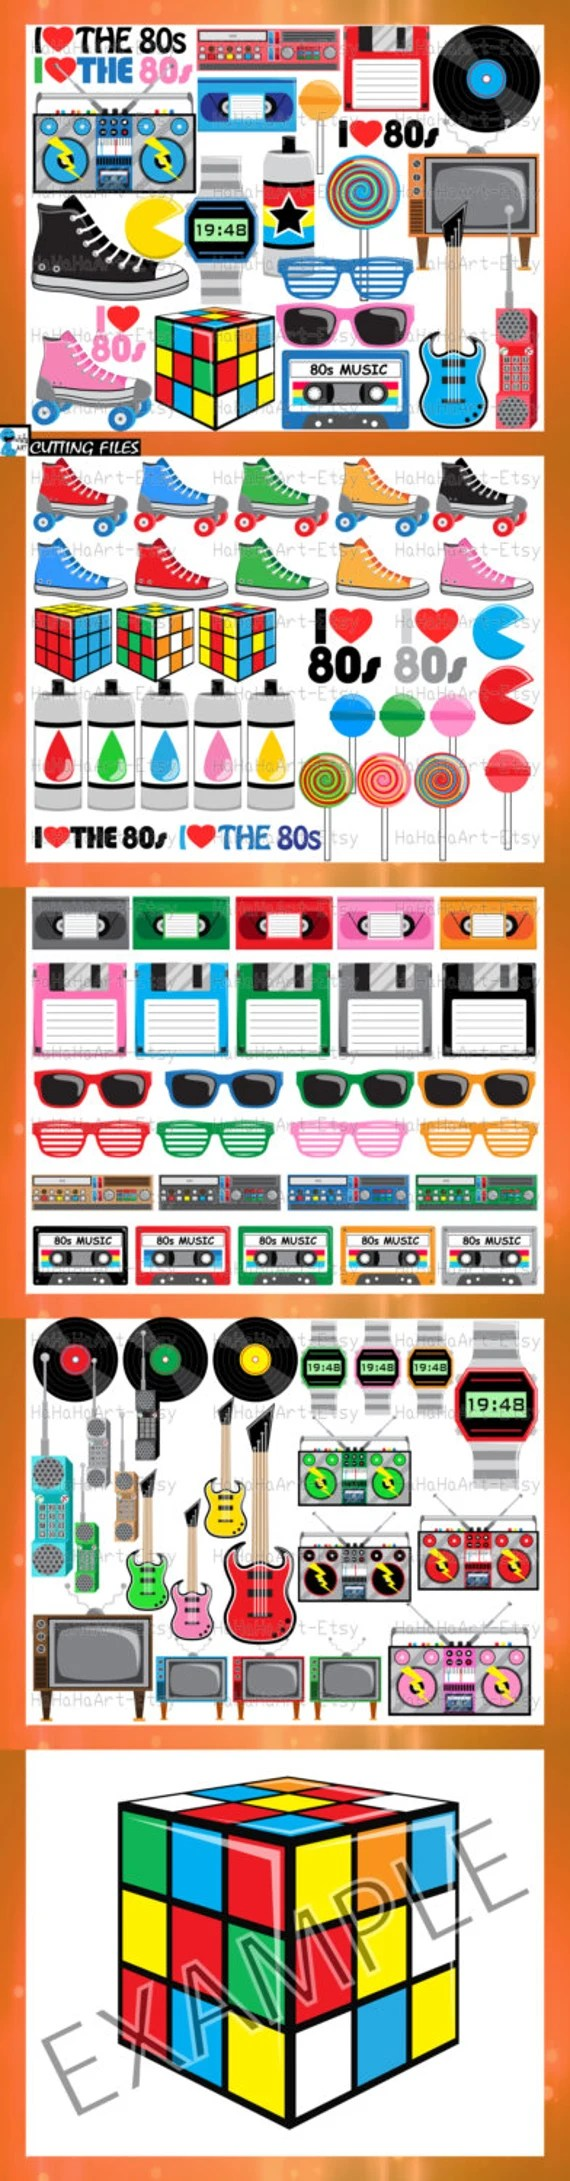 Download 1980s I Love The 80s v2 Cutting Files Svg Png Jpg Eps